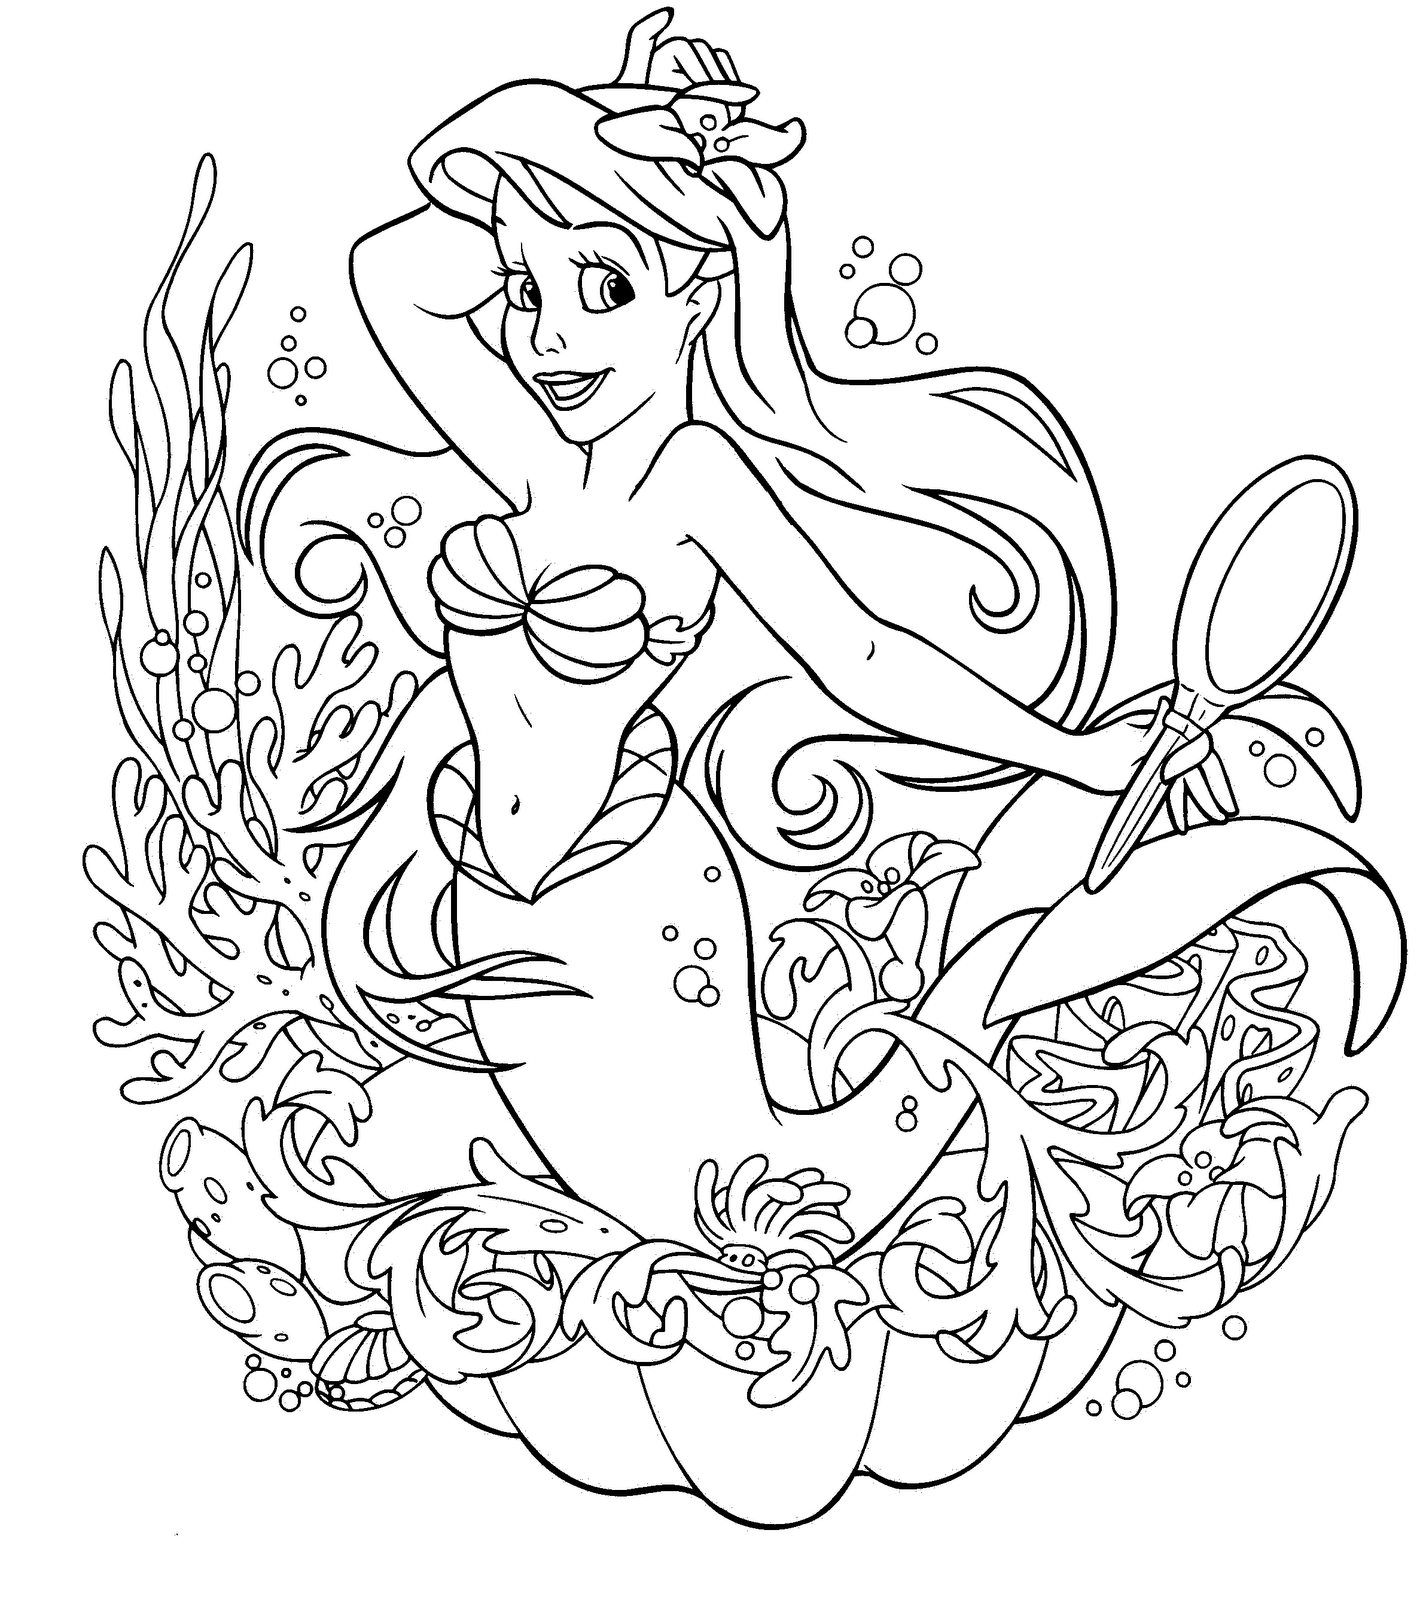 Disney Easter Coloring Pages MomJunction